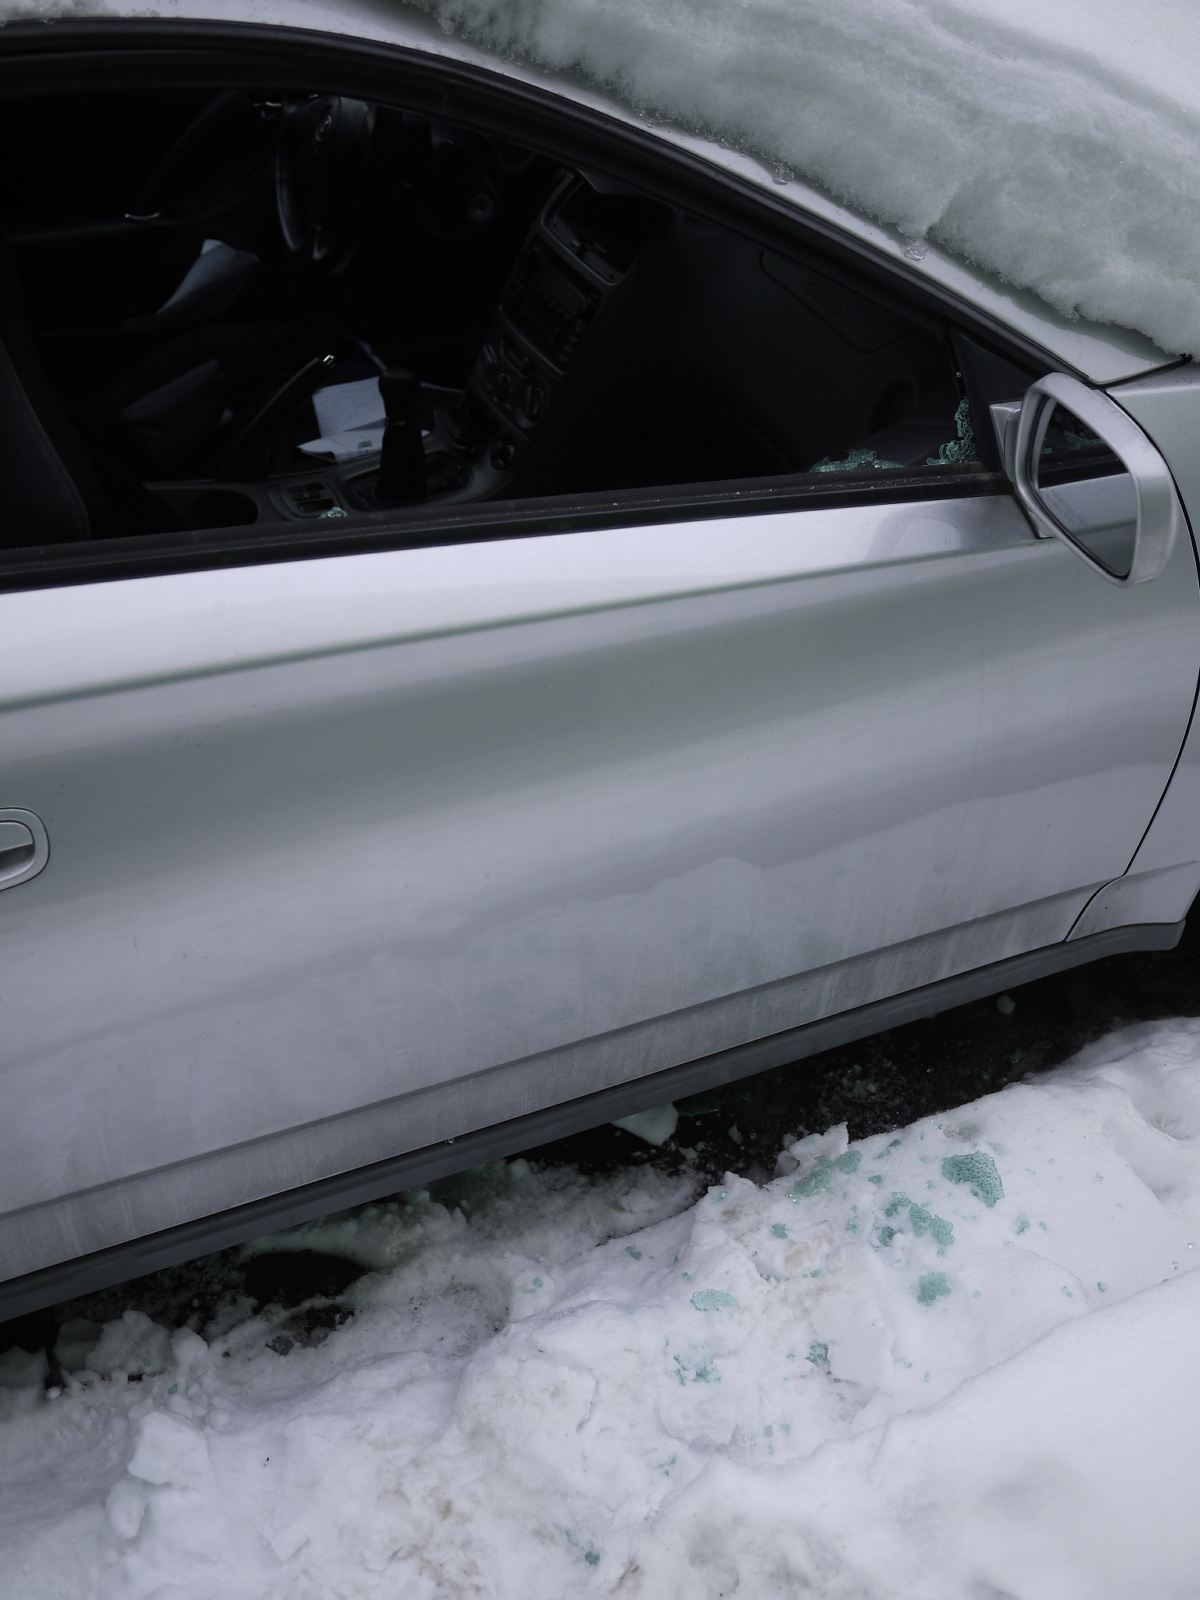 Car buried under snow and suffered a broken window